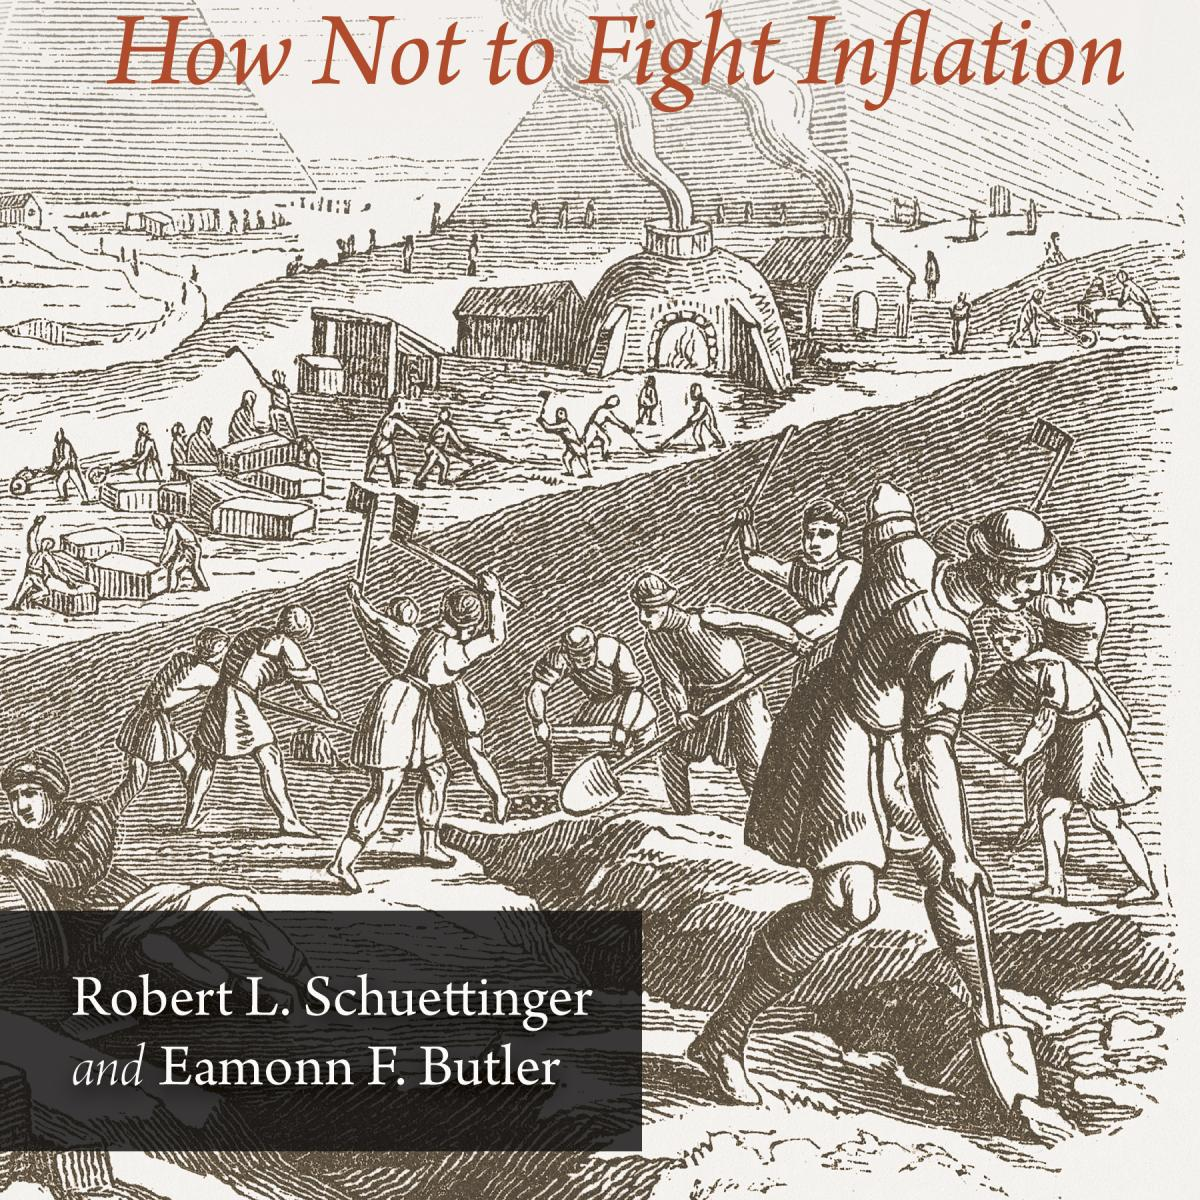 Forty centuries of wage and price controls how not to fight forty centuries of wage and price controls how not to fight inflation mises institute fandeluxe Image collections